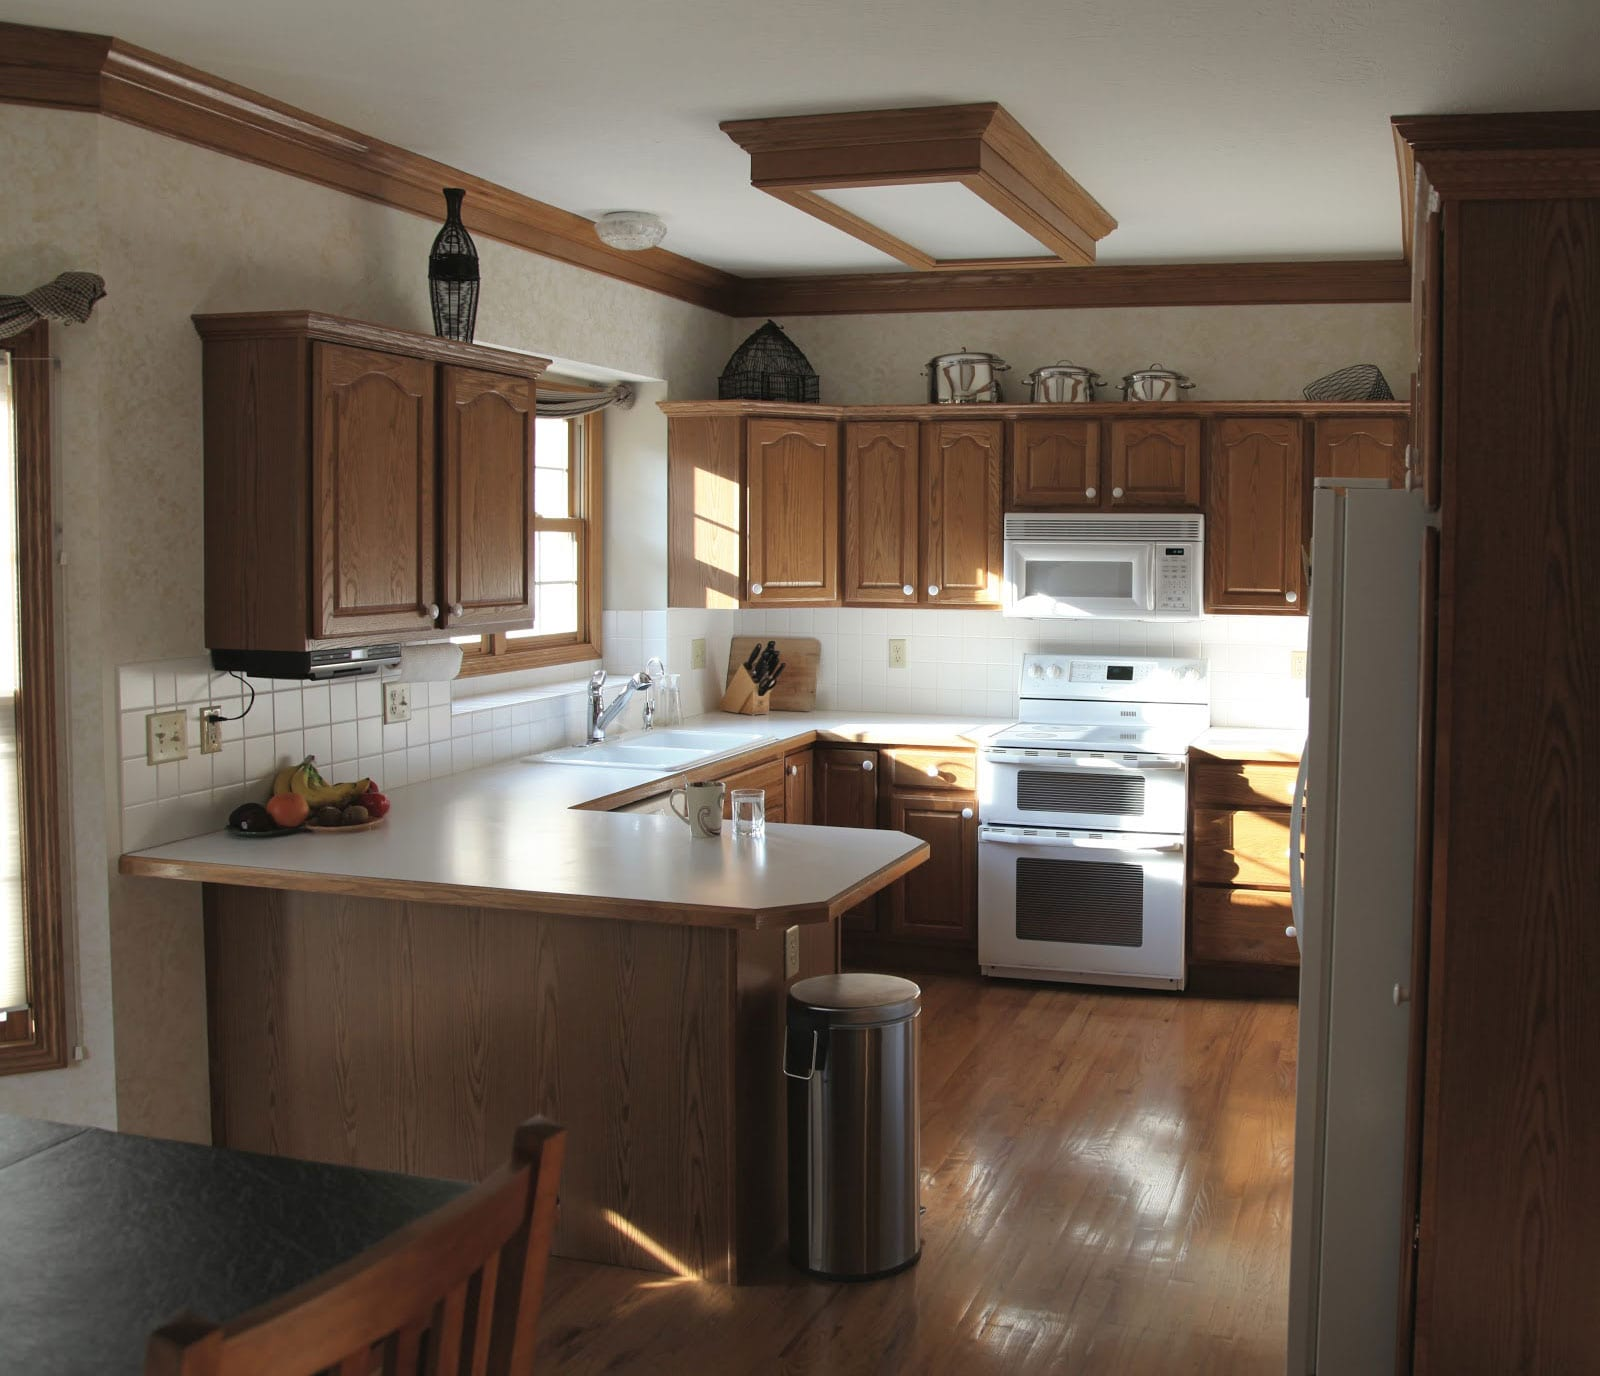 old kitchen in Hicks before refacing